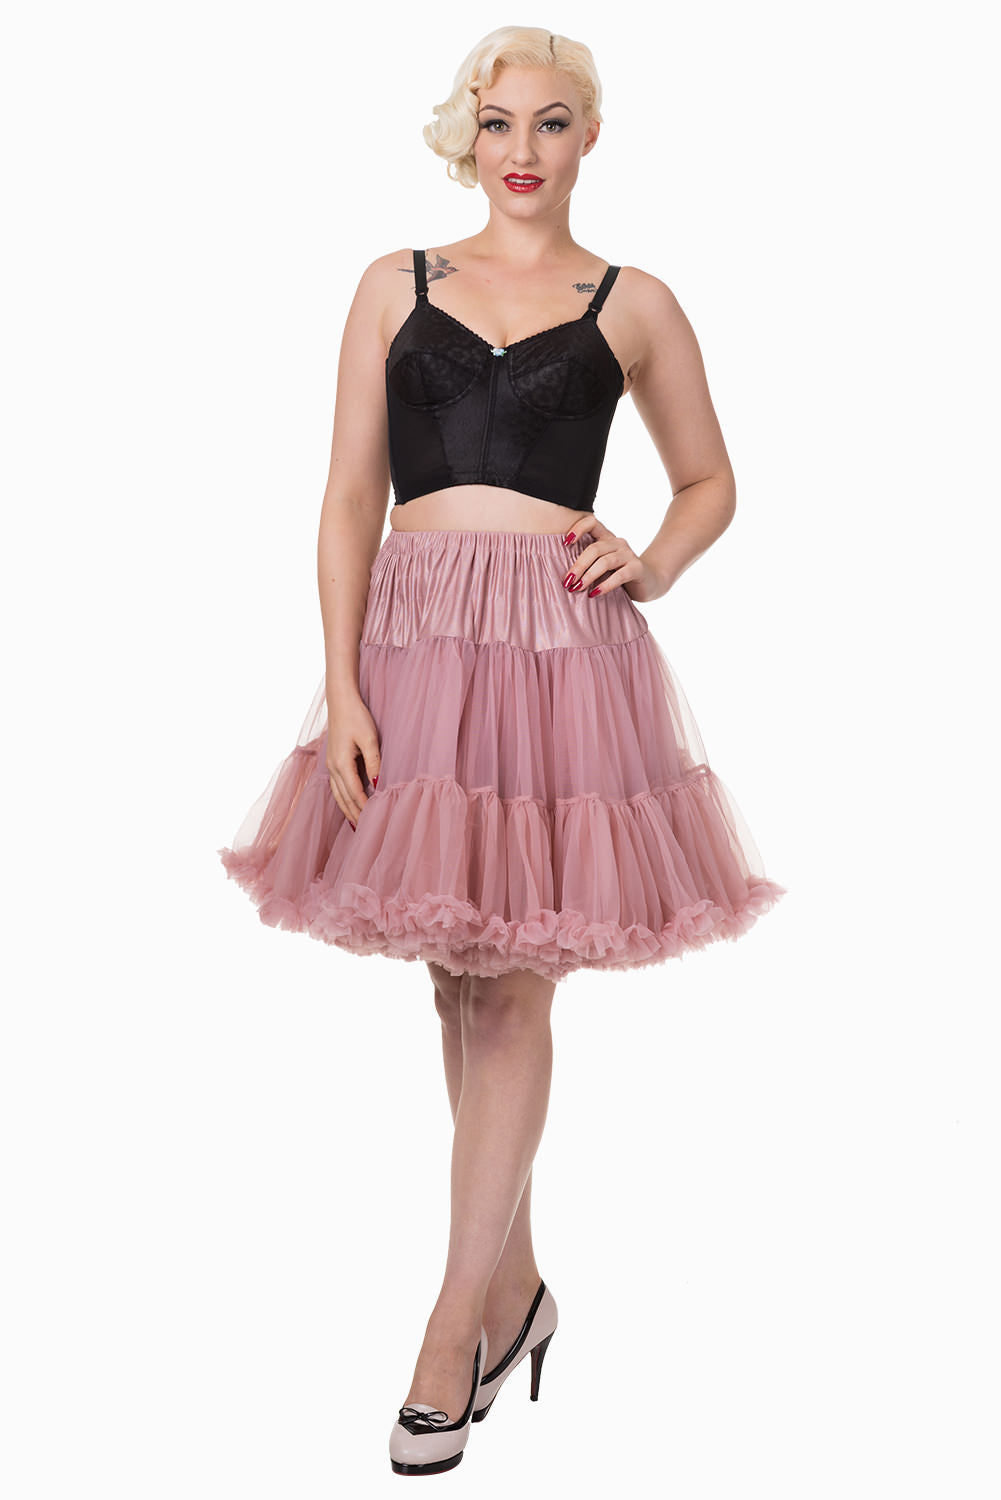 Walkabout Petticoat in Dusty Pink